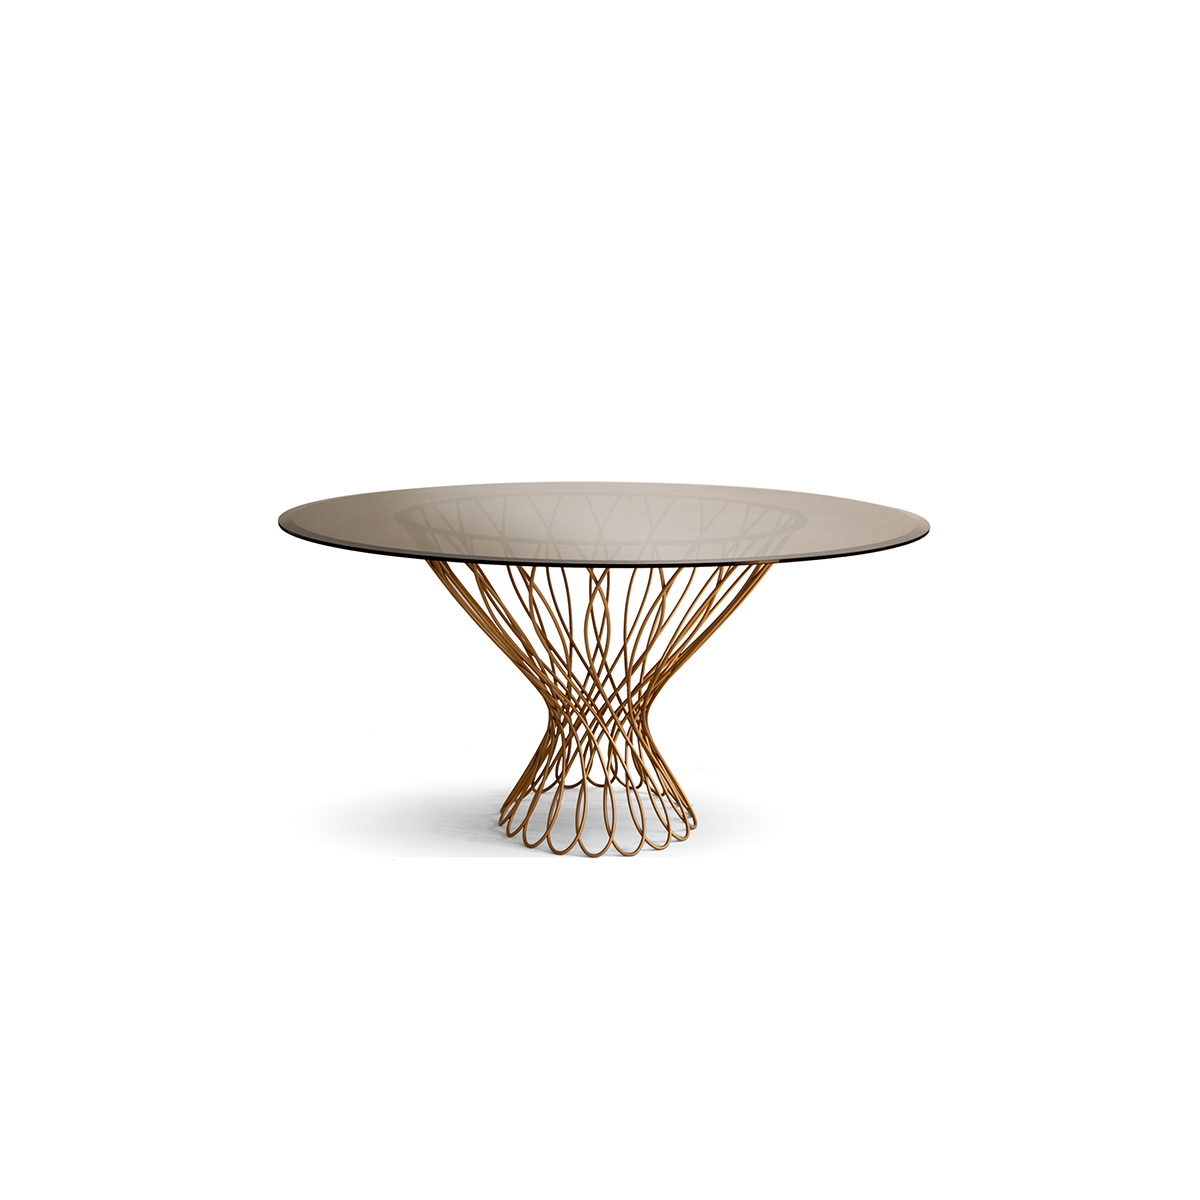 More 20 Luxury Dining Tables That Are Perfect For Your Home_7